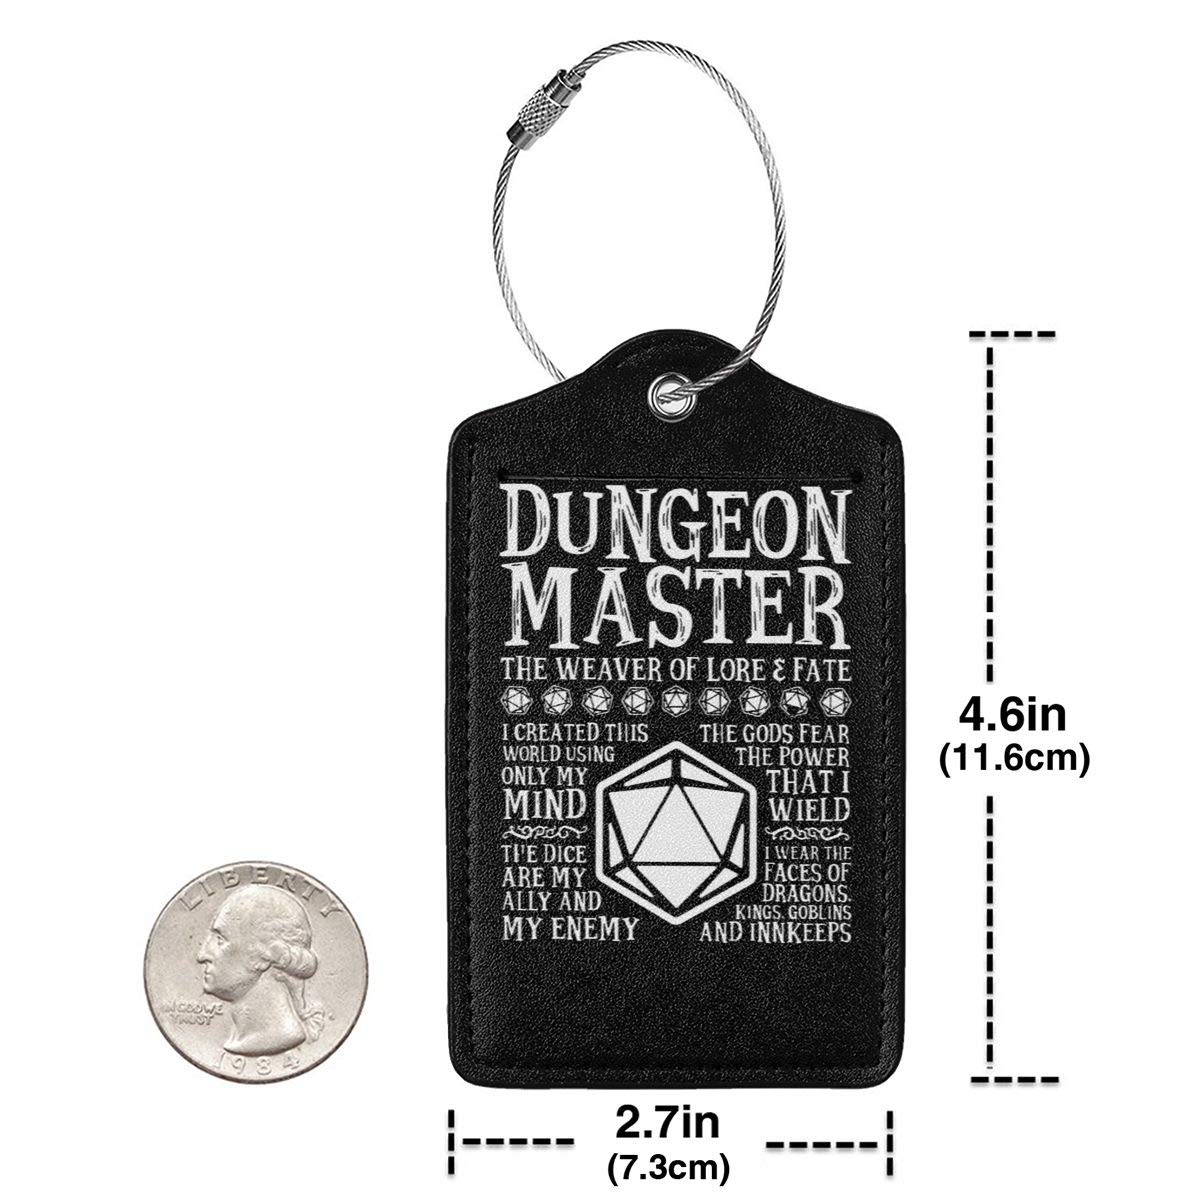 The Weaver Of Lore /& Fate Dungeons /& Dragons Leather Luggage Tag Travel ID Label For Baggage Suitcase Dungeon Master